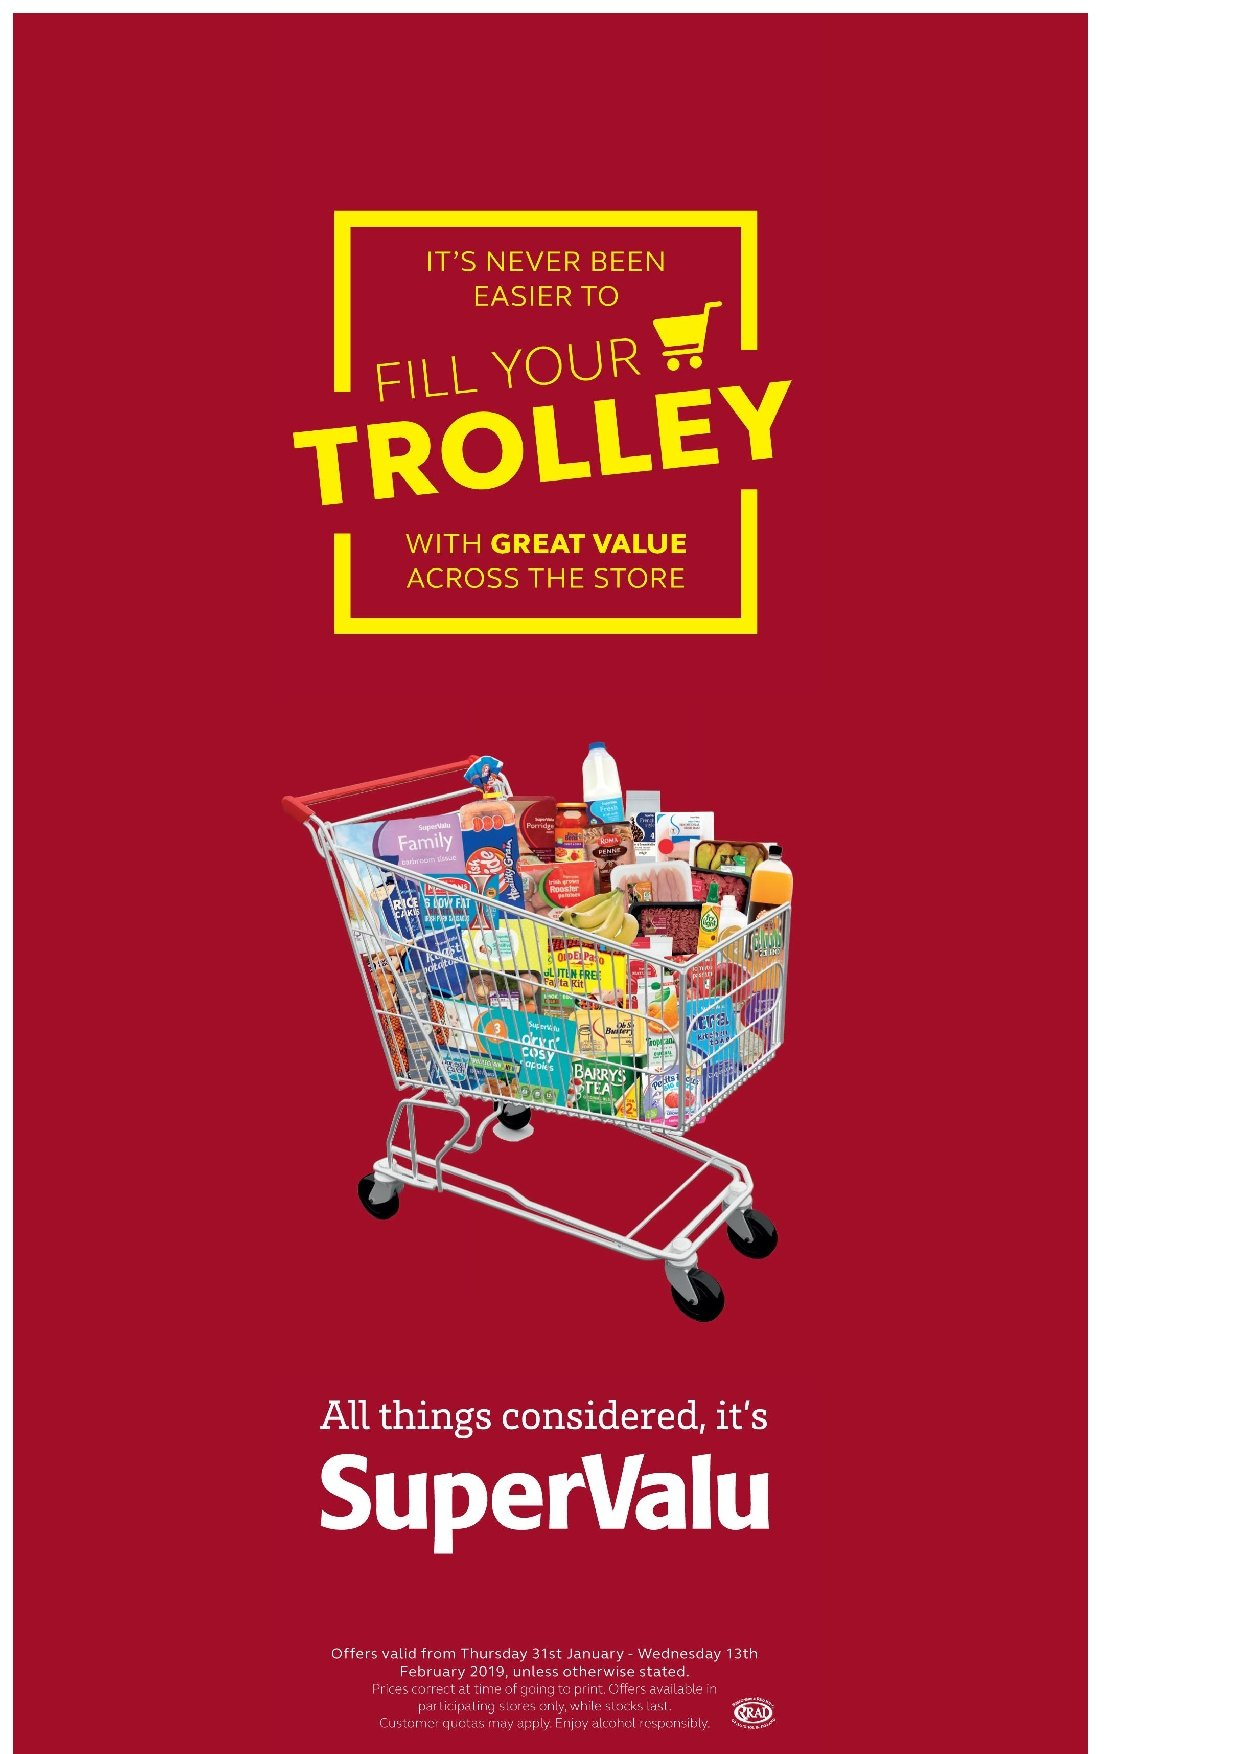 SuperValu offer  - 31.1.2019 - 13.2.2019 - Sales products - fa, trolley. Page 1.